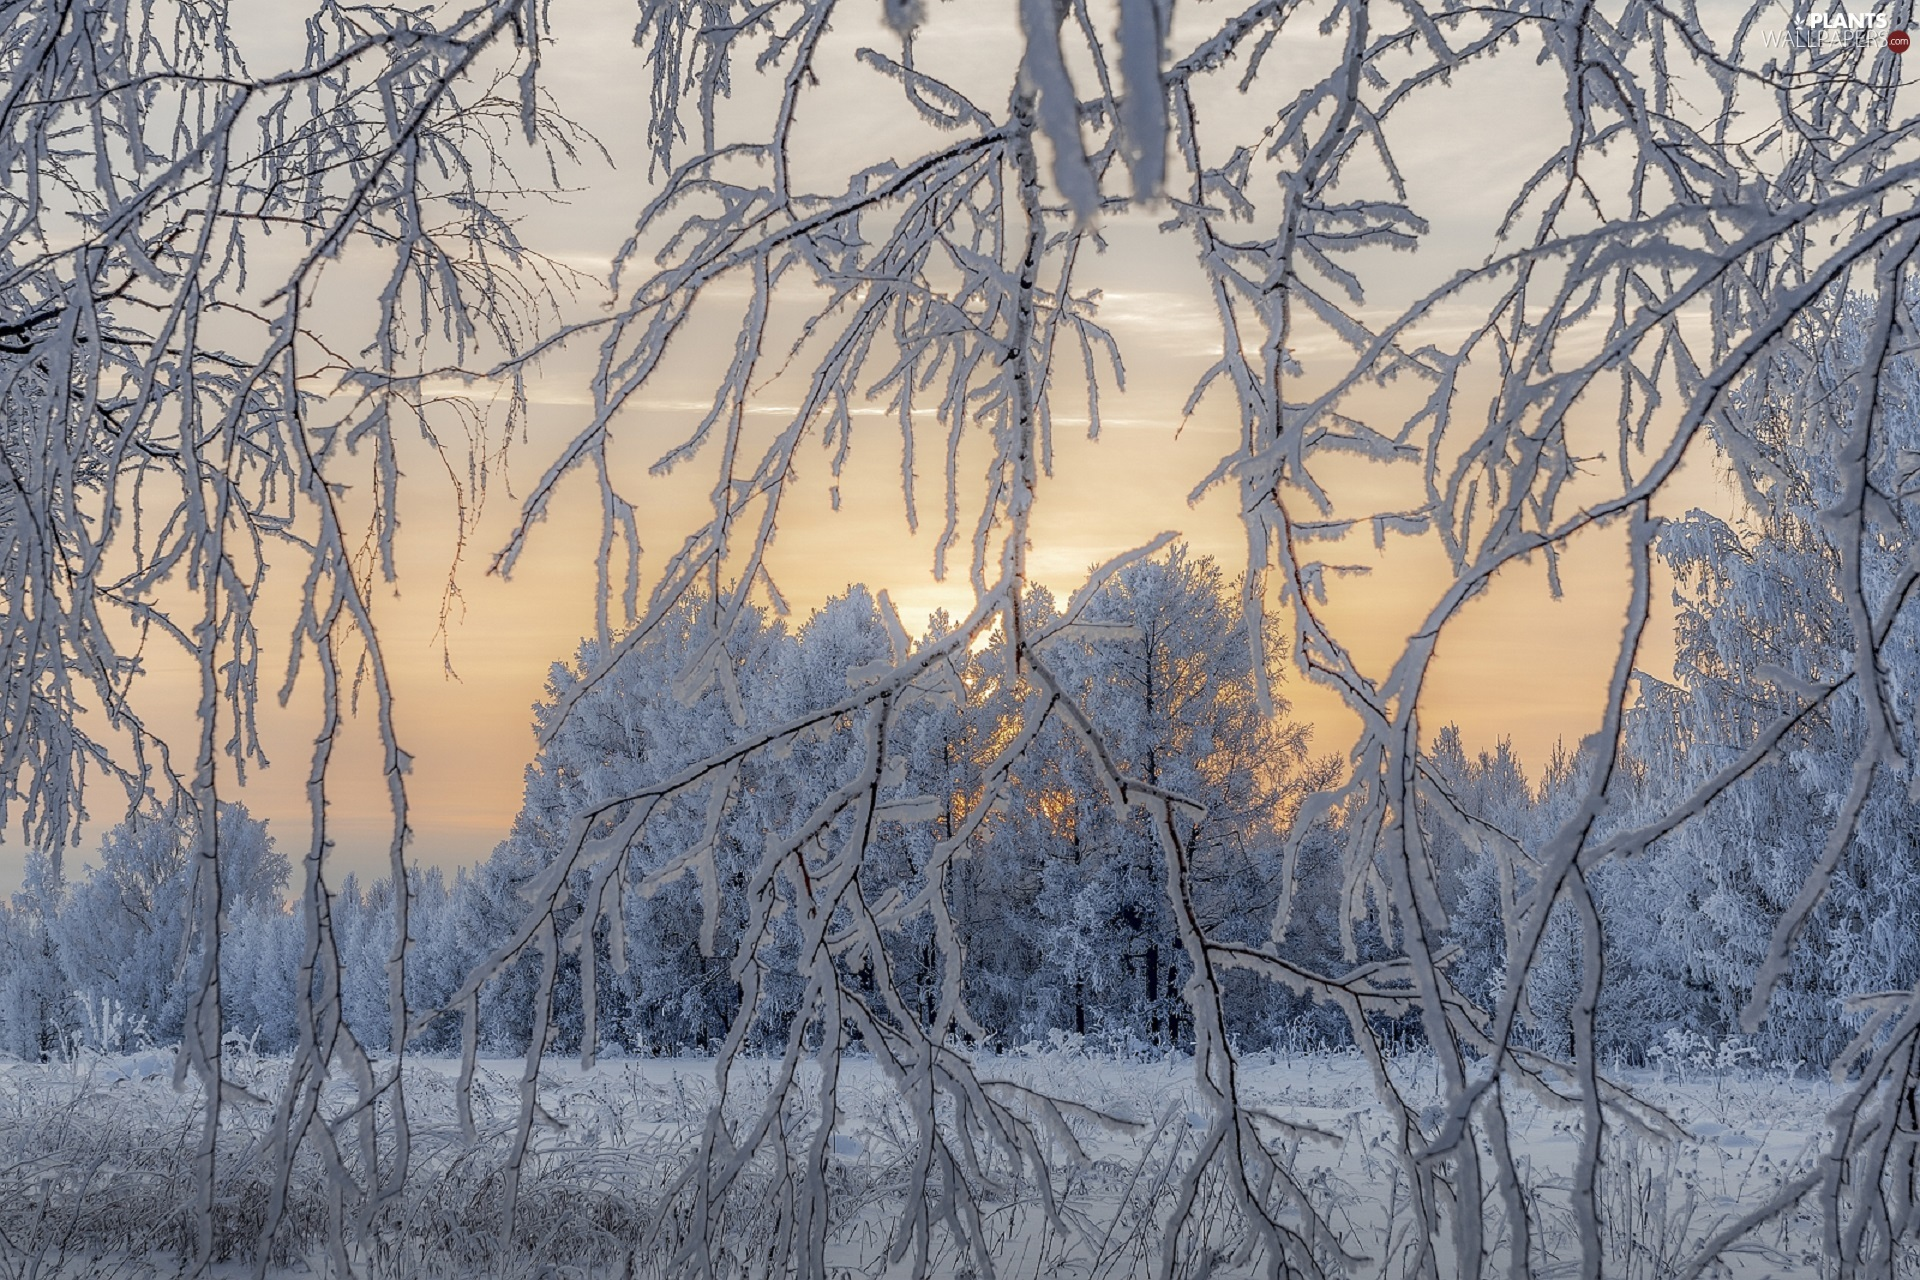 snow, trees, White frost, viewes, winter, Twigs, Sunrise